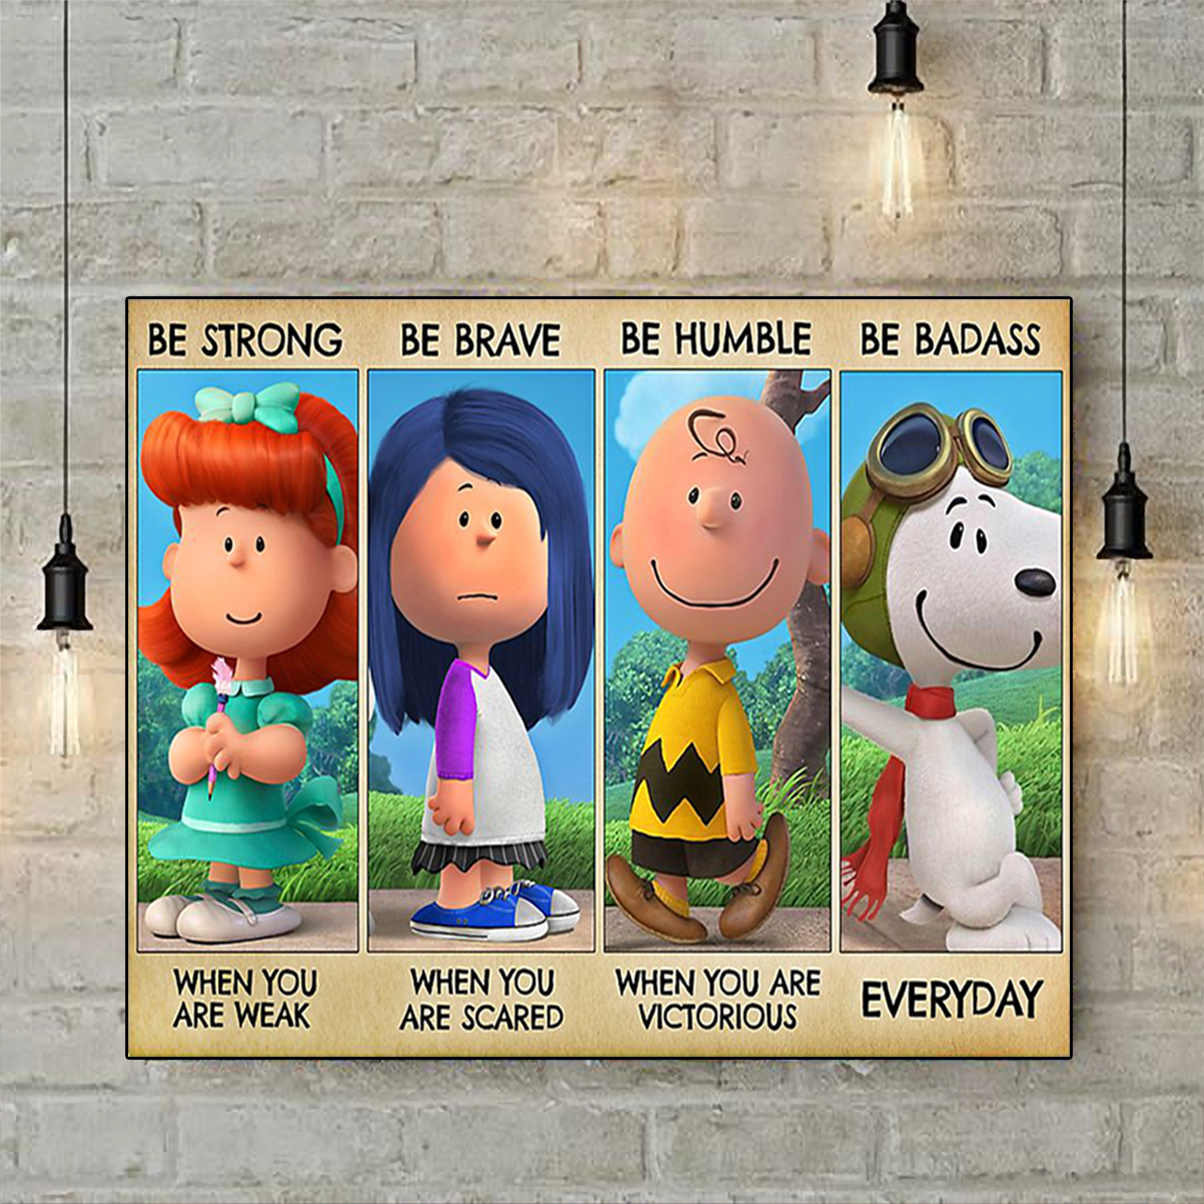 Peanuts characters be strong be brave be humble be badass poster A1